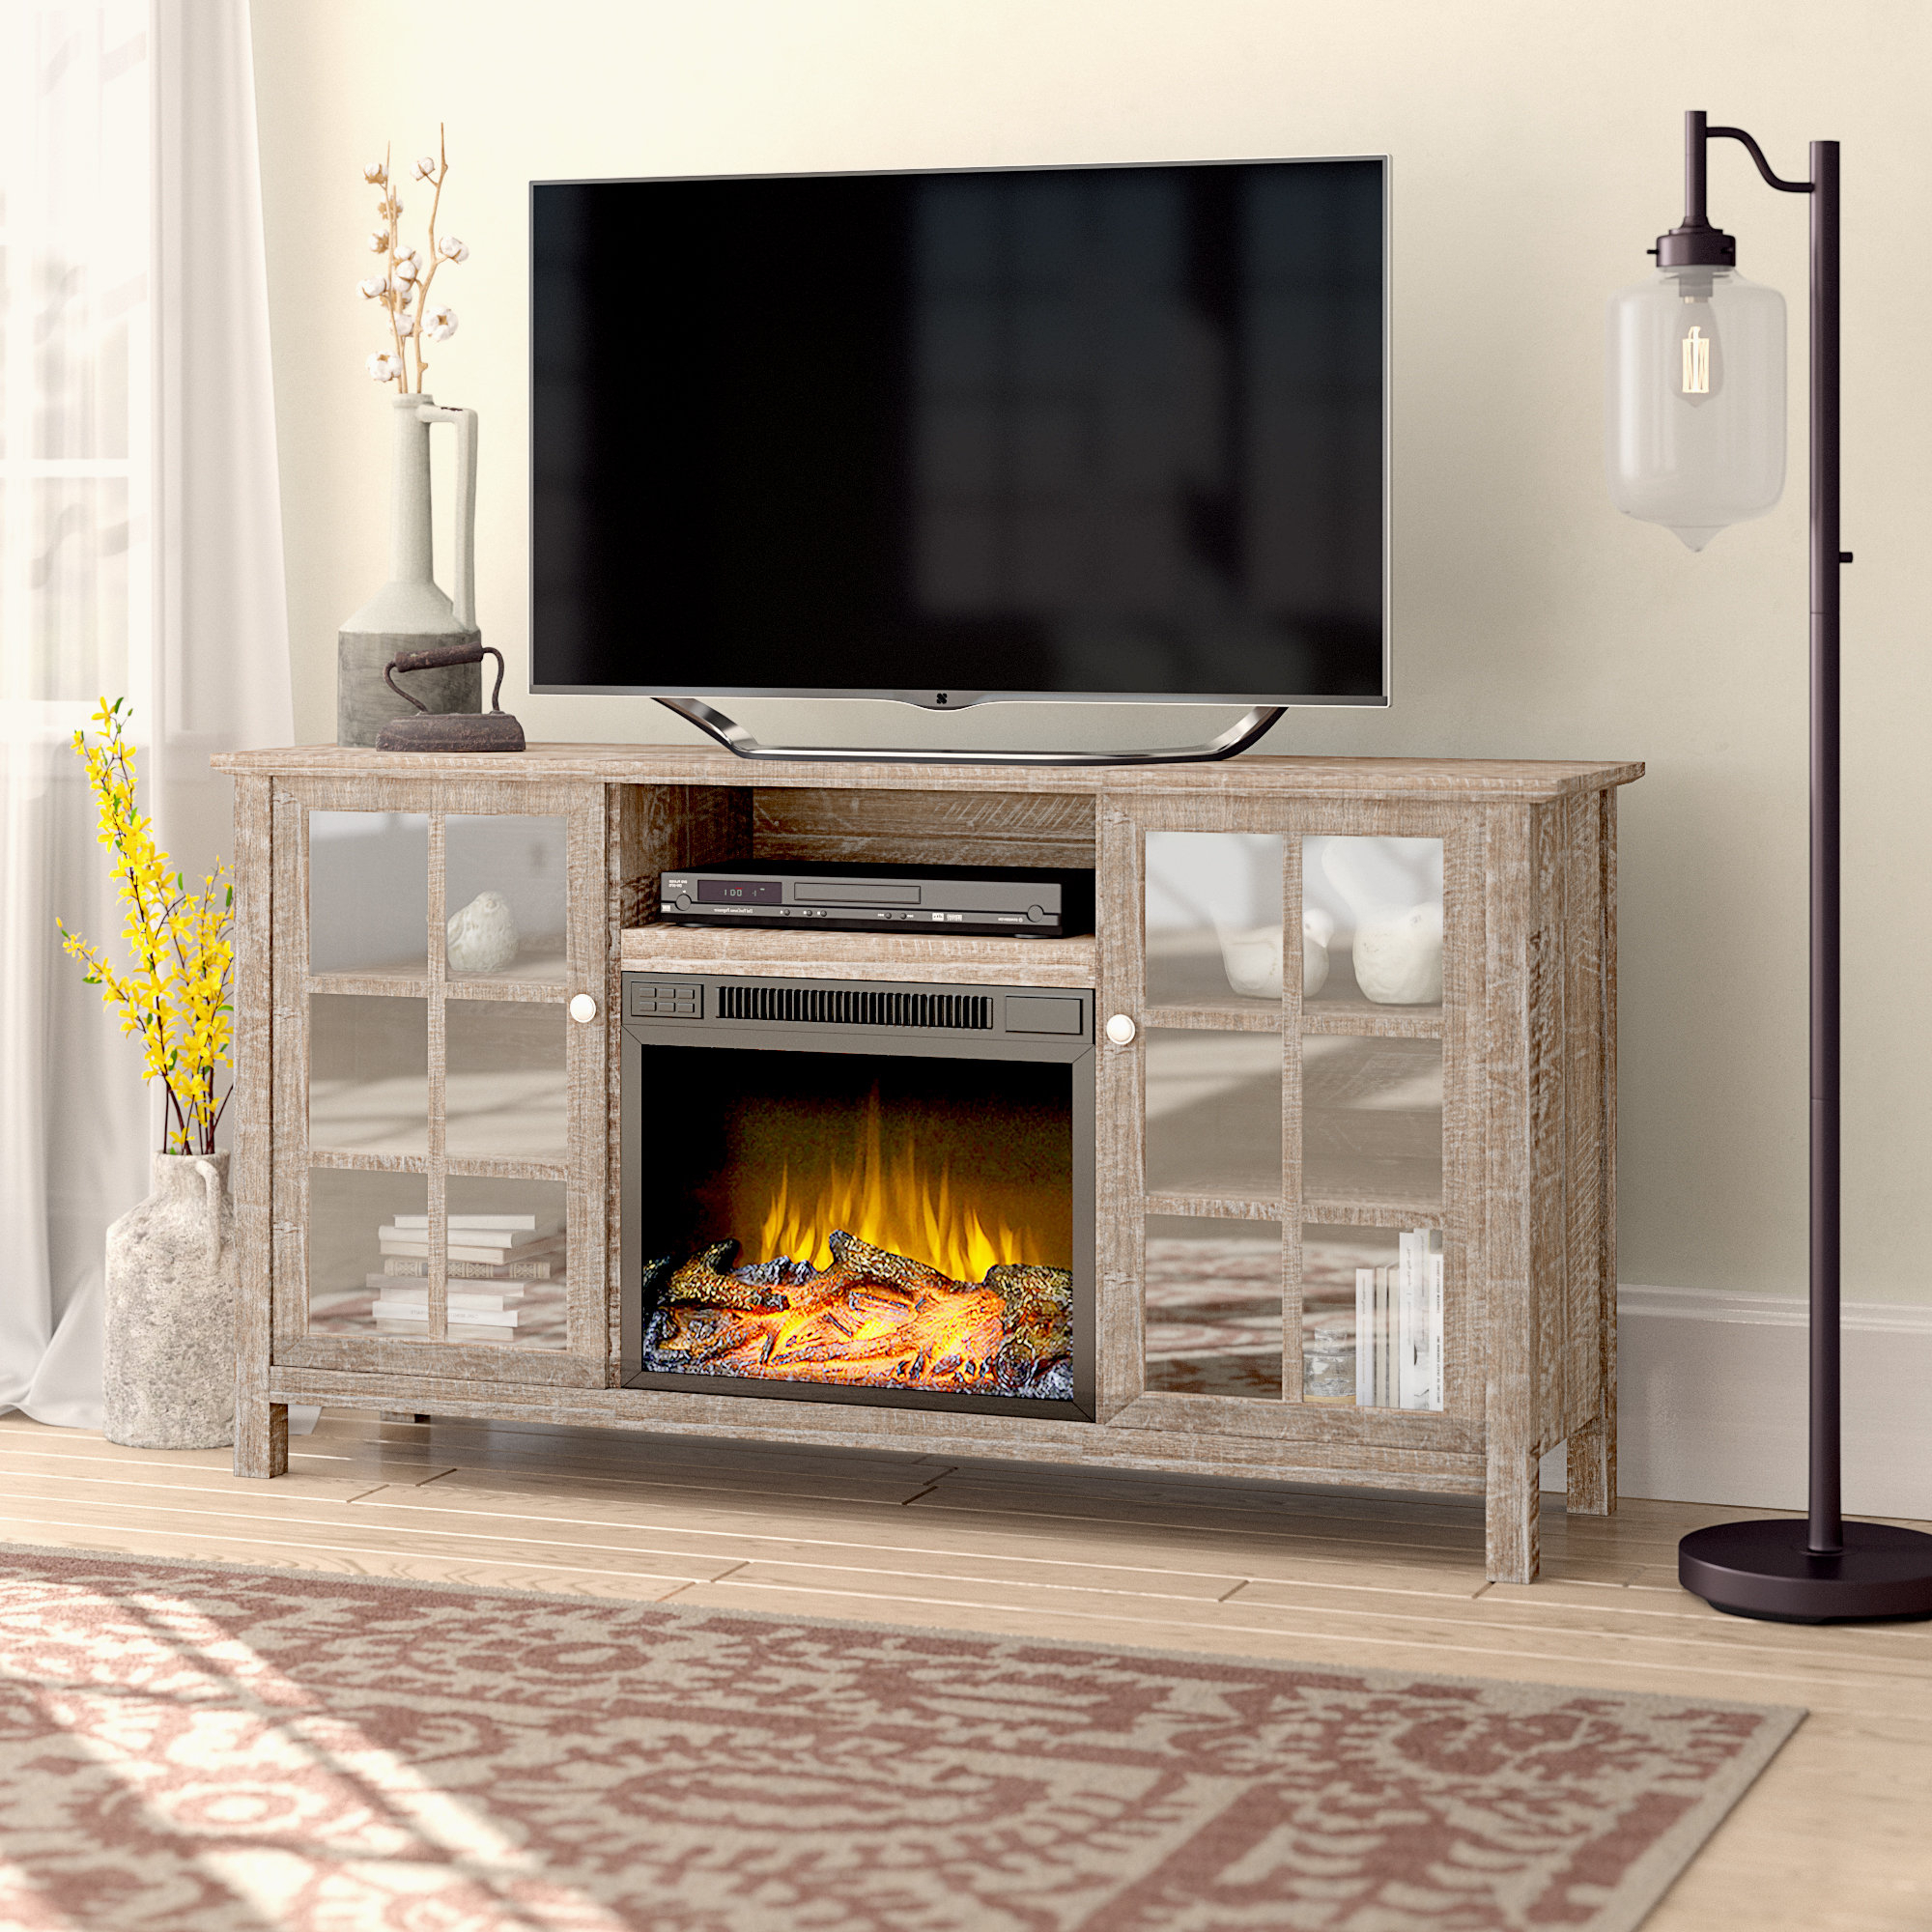 Trendy Laurel Foundry Modern Farmhouse Benoit Tv Stand For Tvs Up To 65 Inside Caden 63 Inch Tv Stands (View 14 of 20)